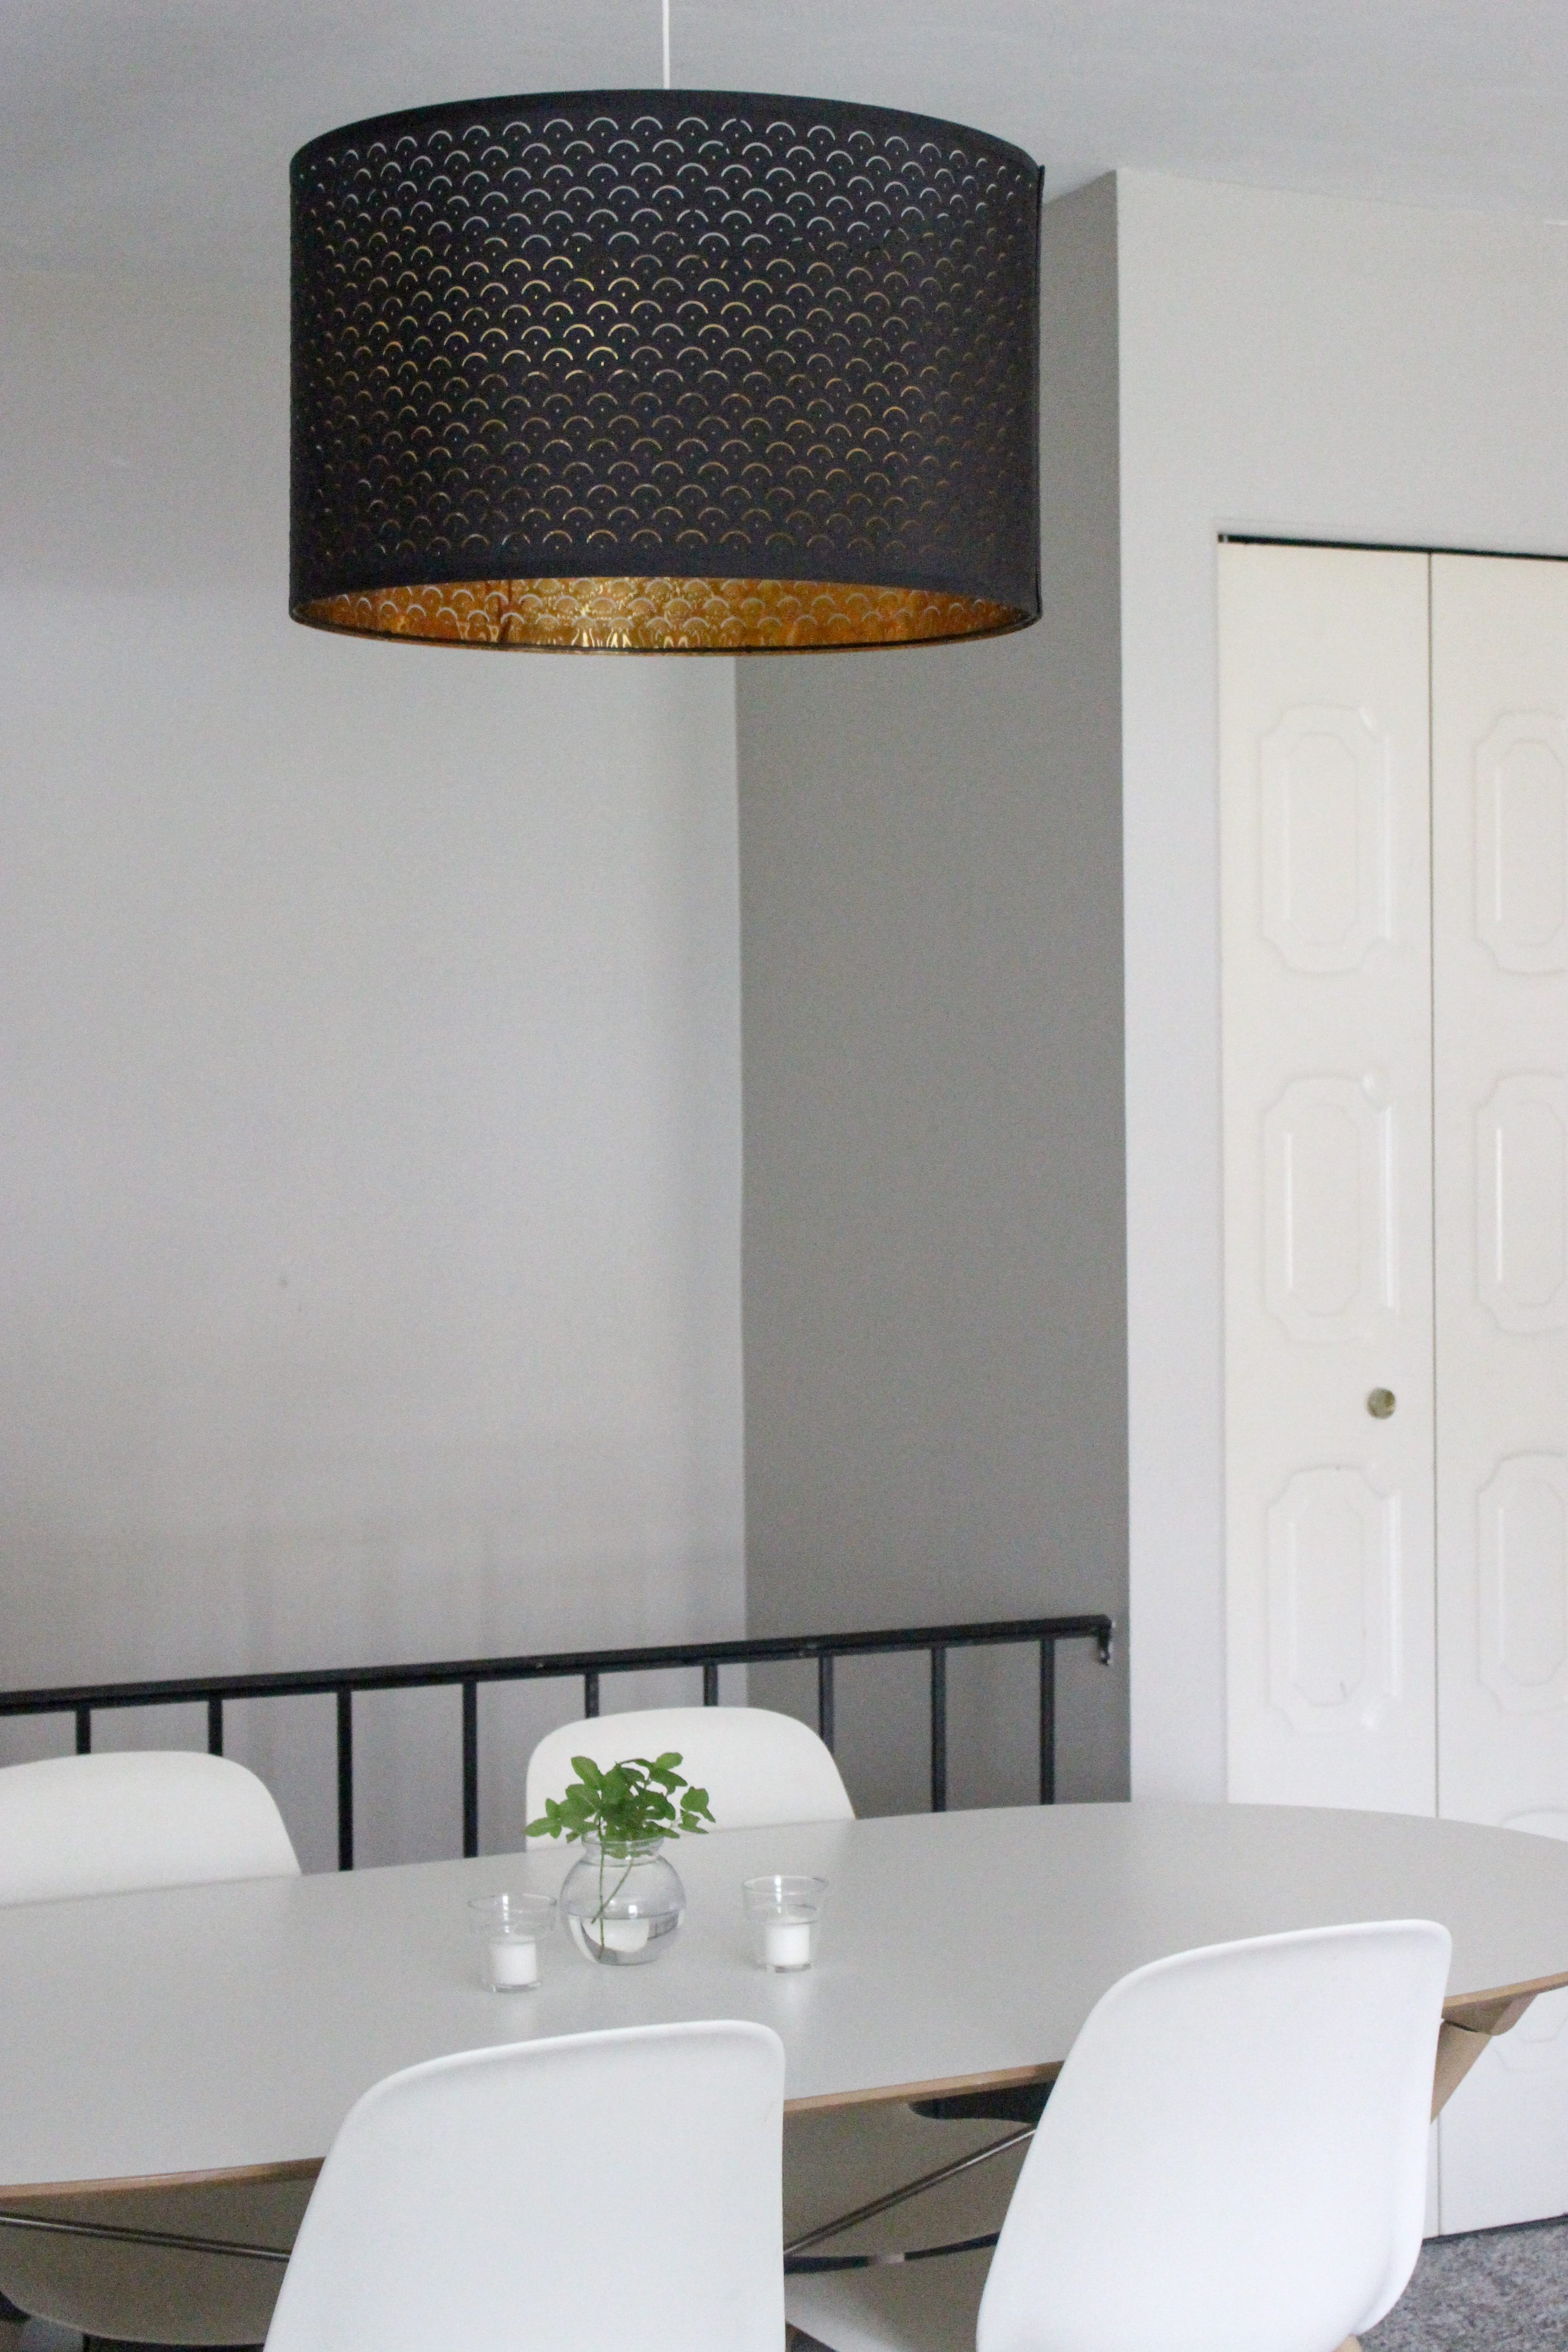 Overhead Pendant Lighting Without Electrical Work